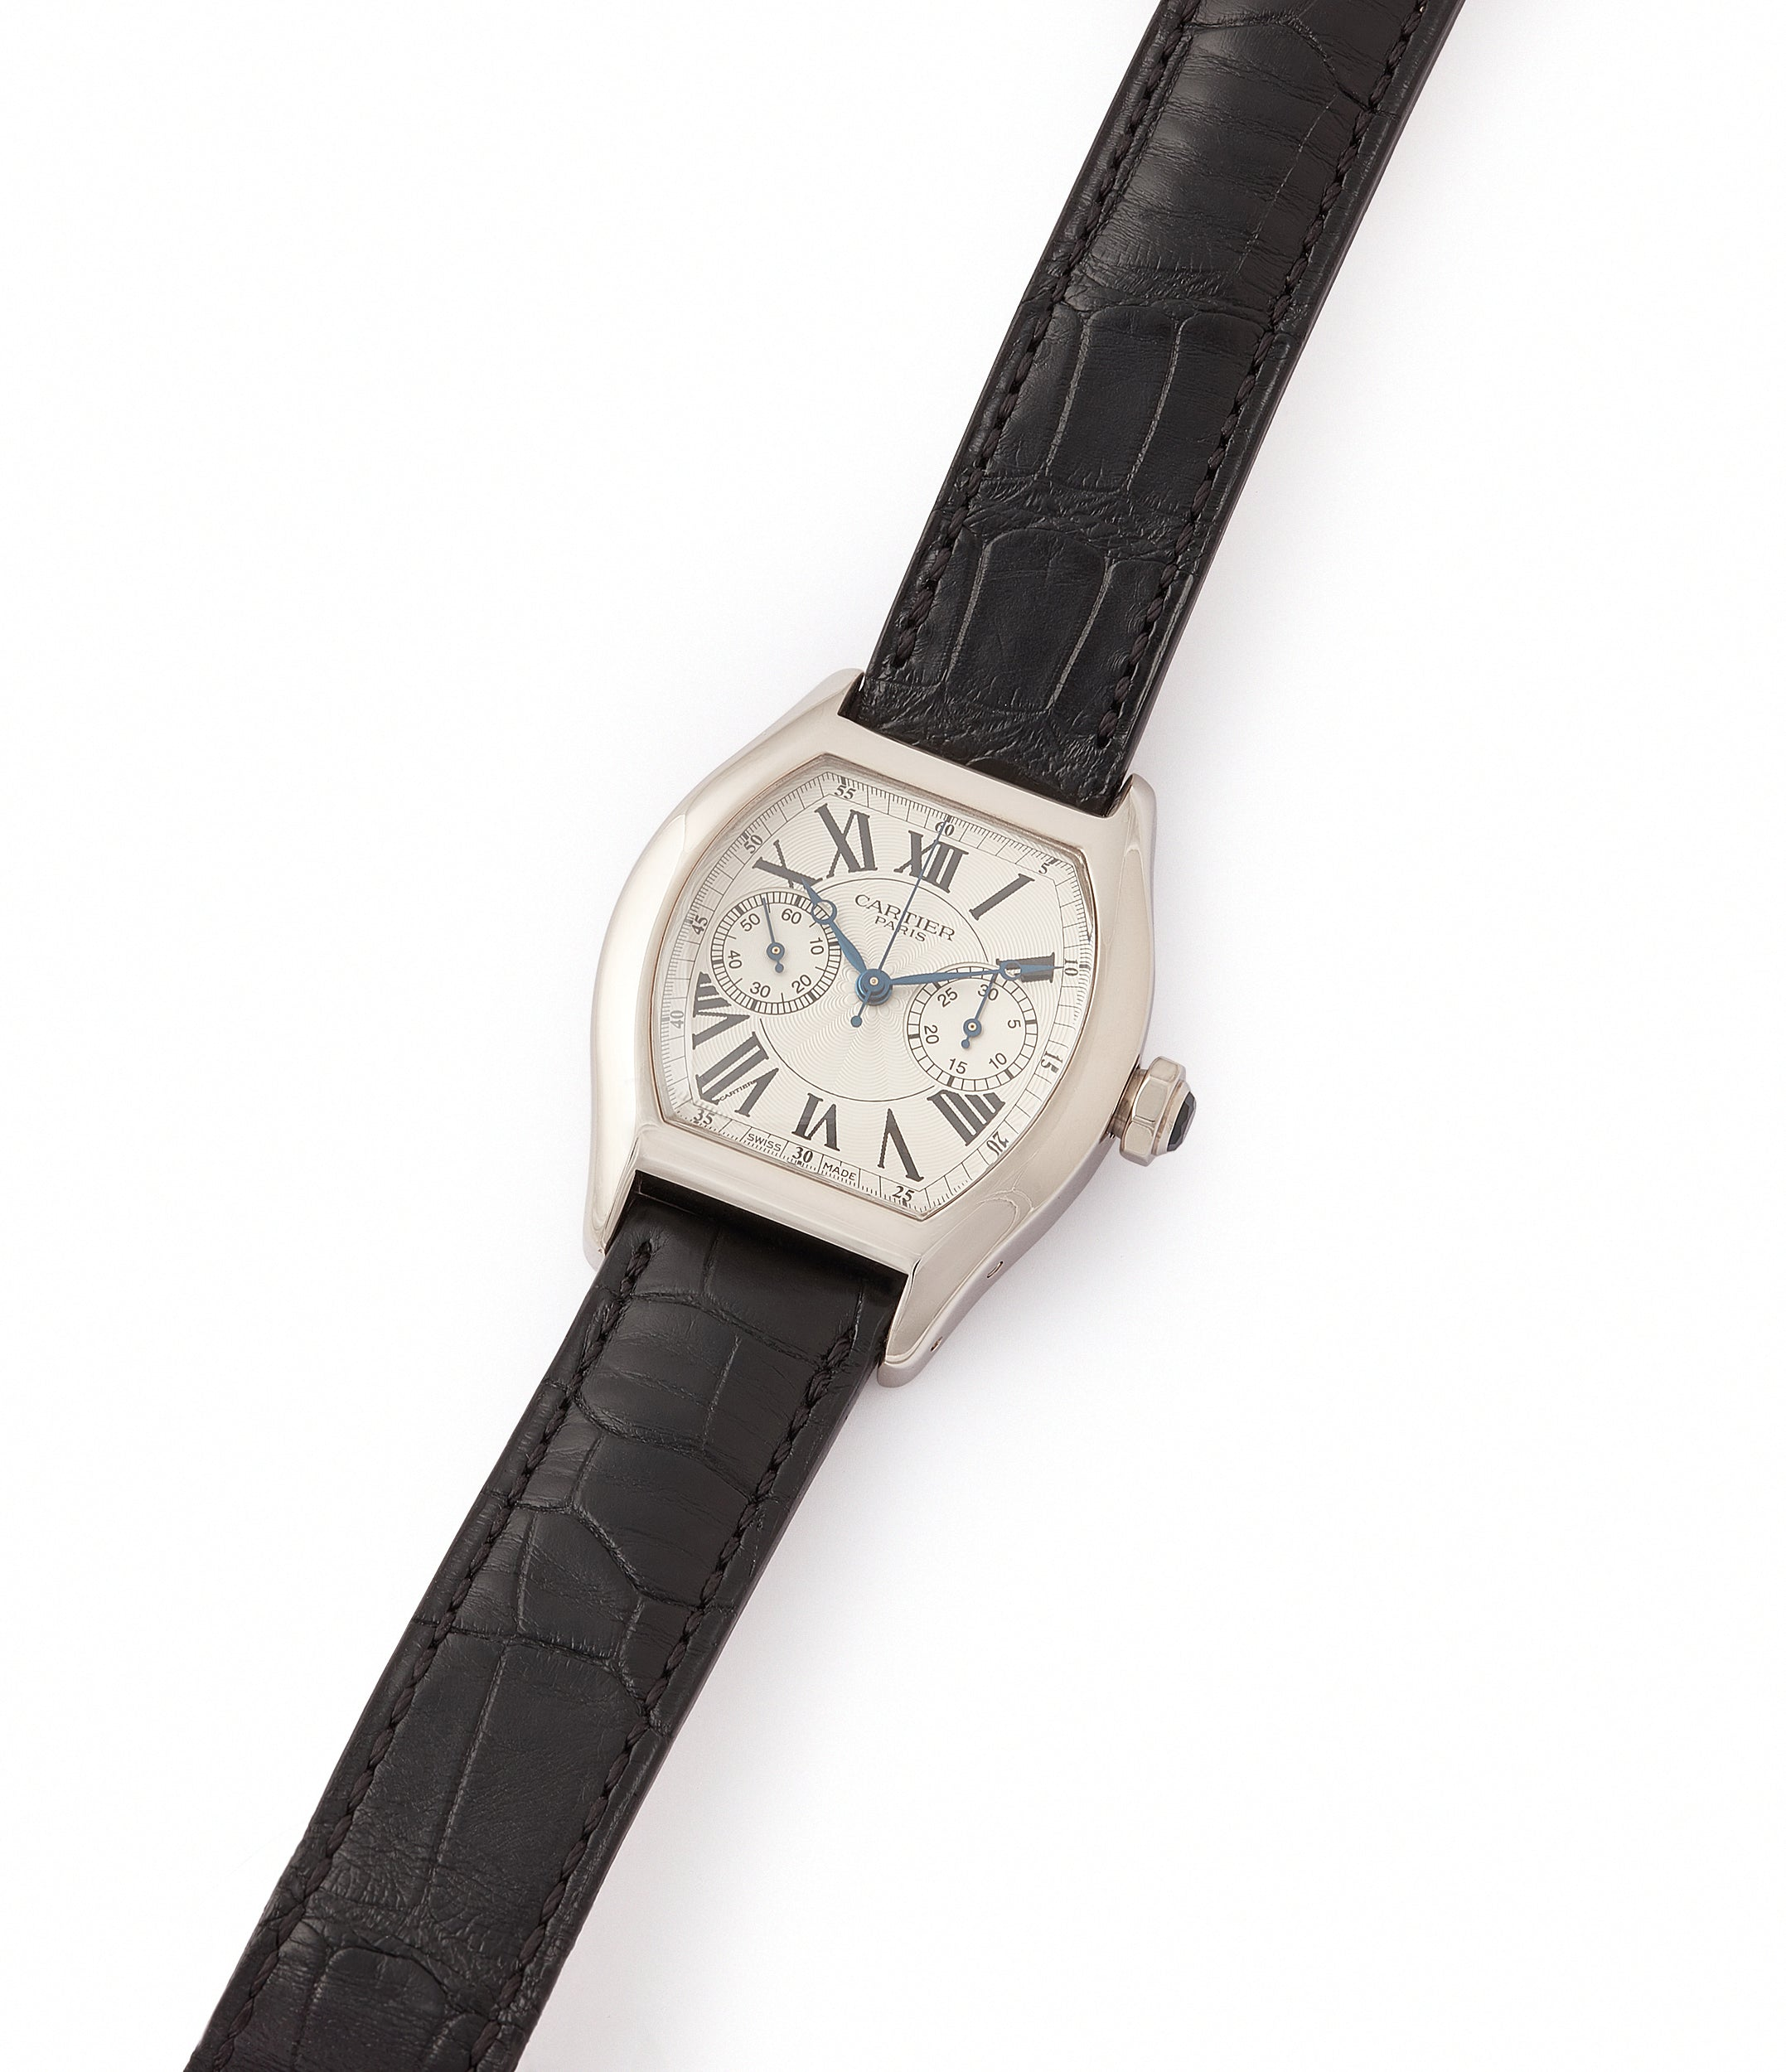 selling Cartier Monopusher Monopoussoir Ref. 2714 white gold rare dress watch for sale online at A Collected Man London UK specialist of rare watches